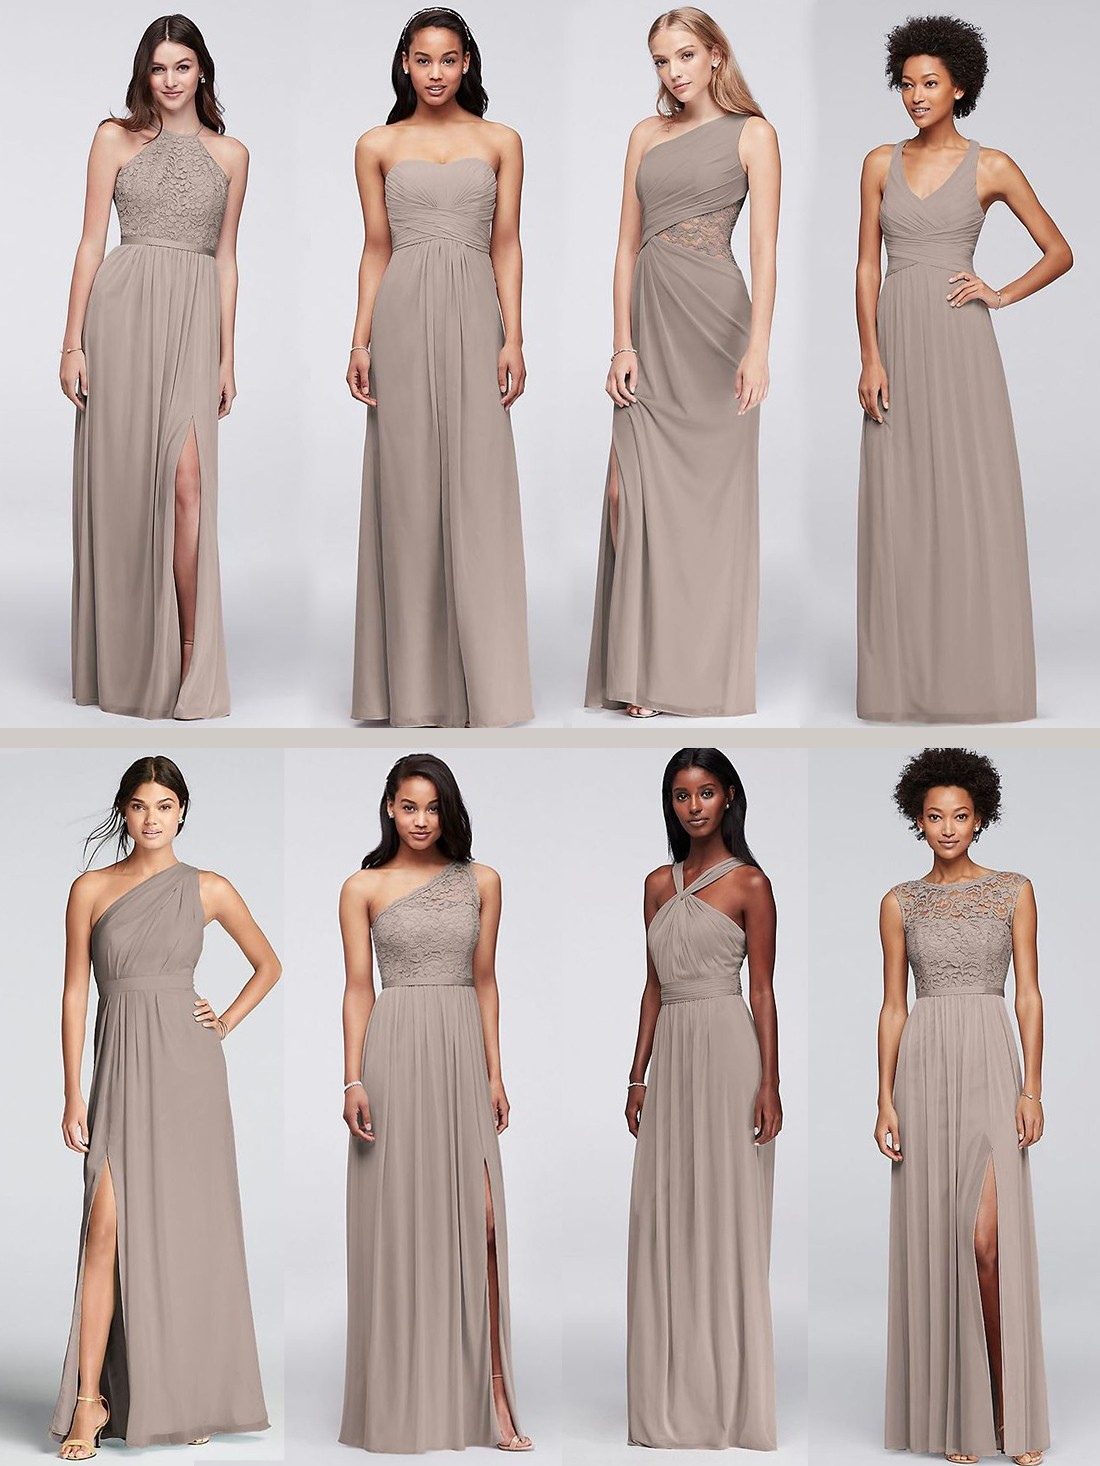 Davids bridal mix and match bridesmaids dresses bride guide davids bridal mix and match bridesmaids dresses option 2 different styles same color ombrellifo Gallery